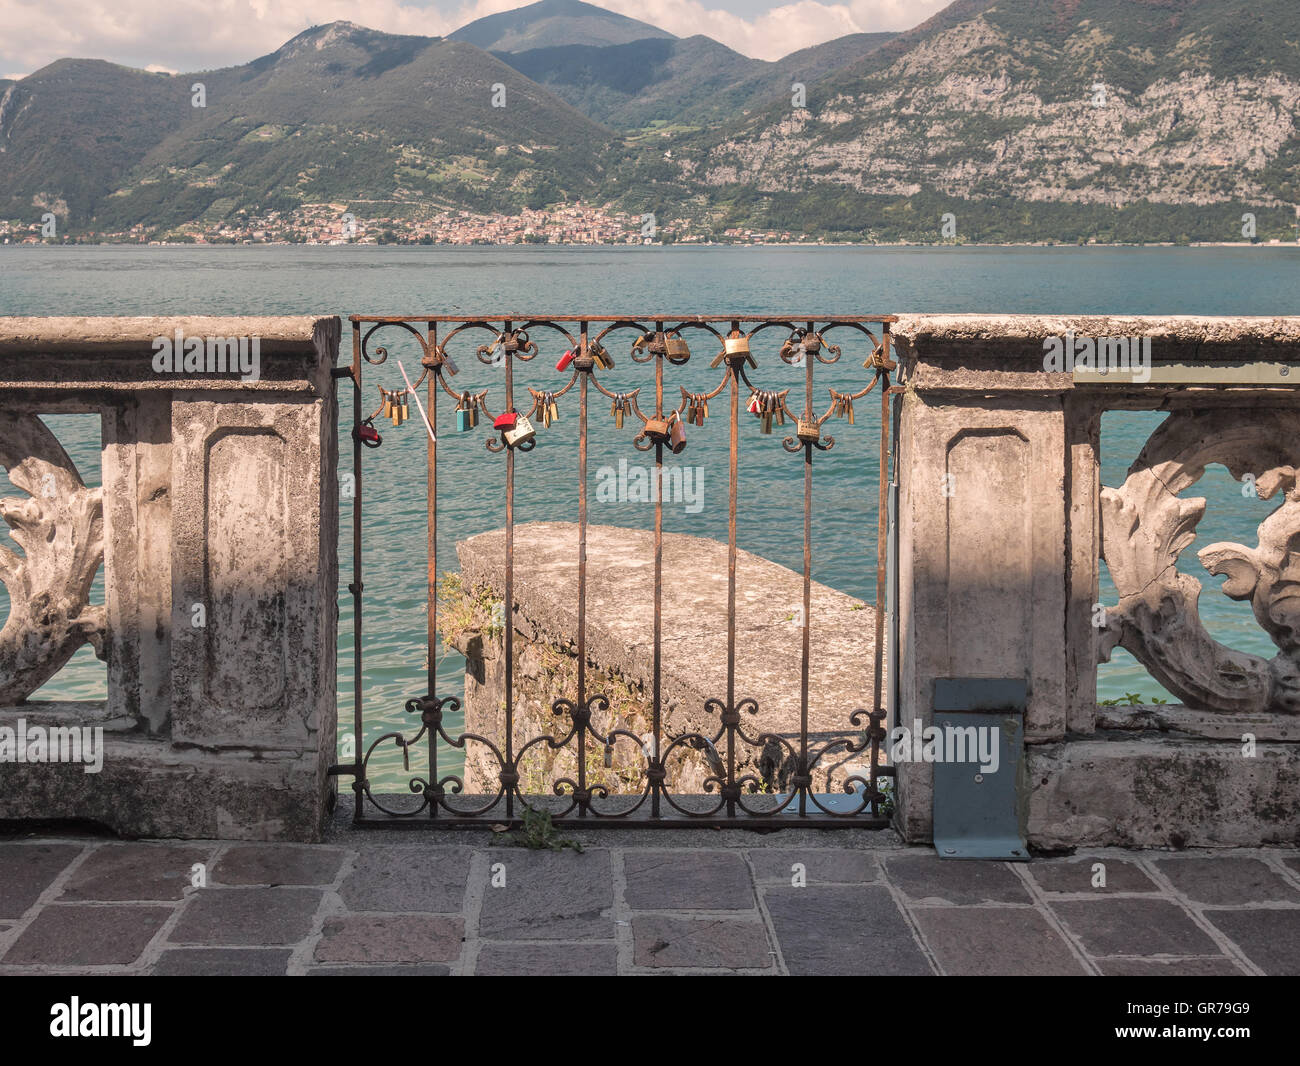 Love lockers in Iseo Village at lake Iseo in Italy - Stock Image